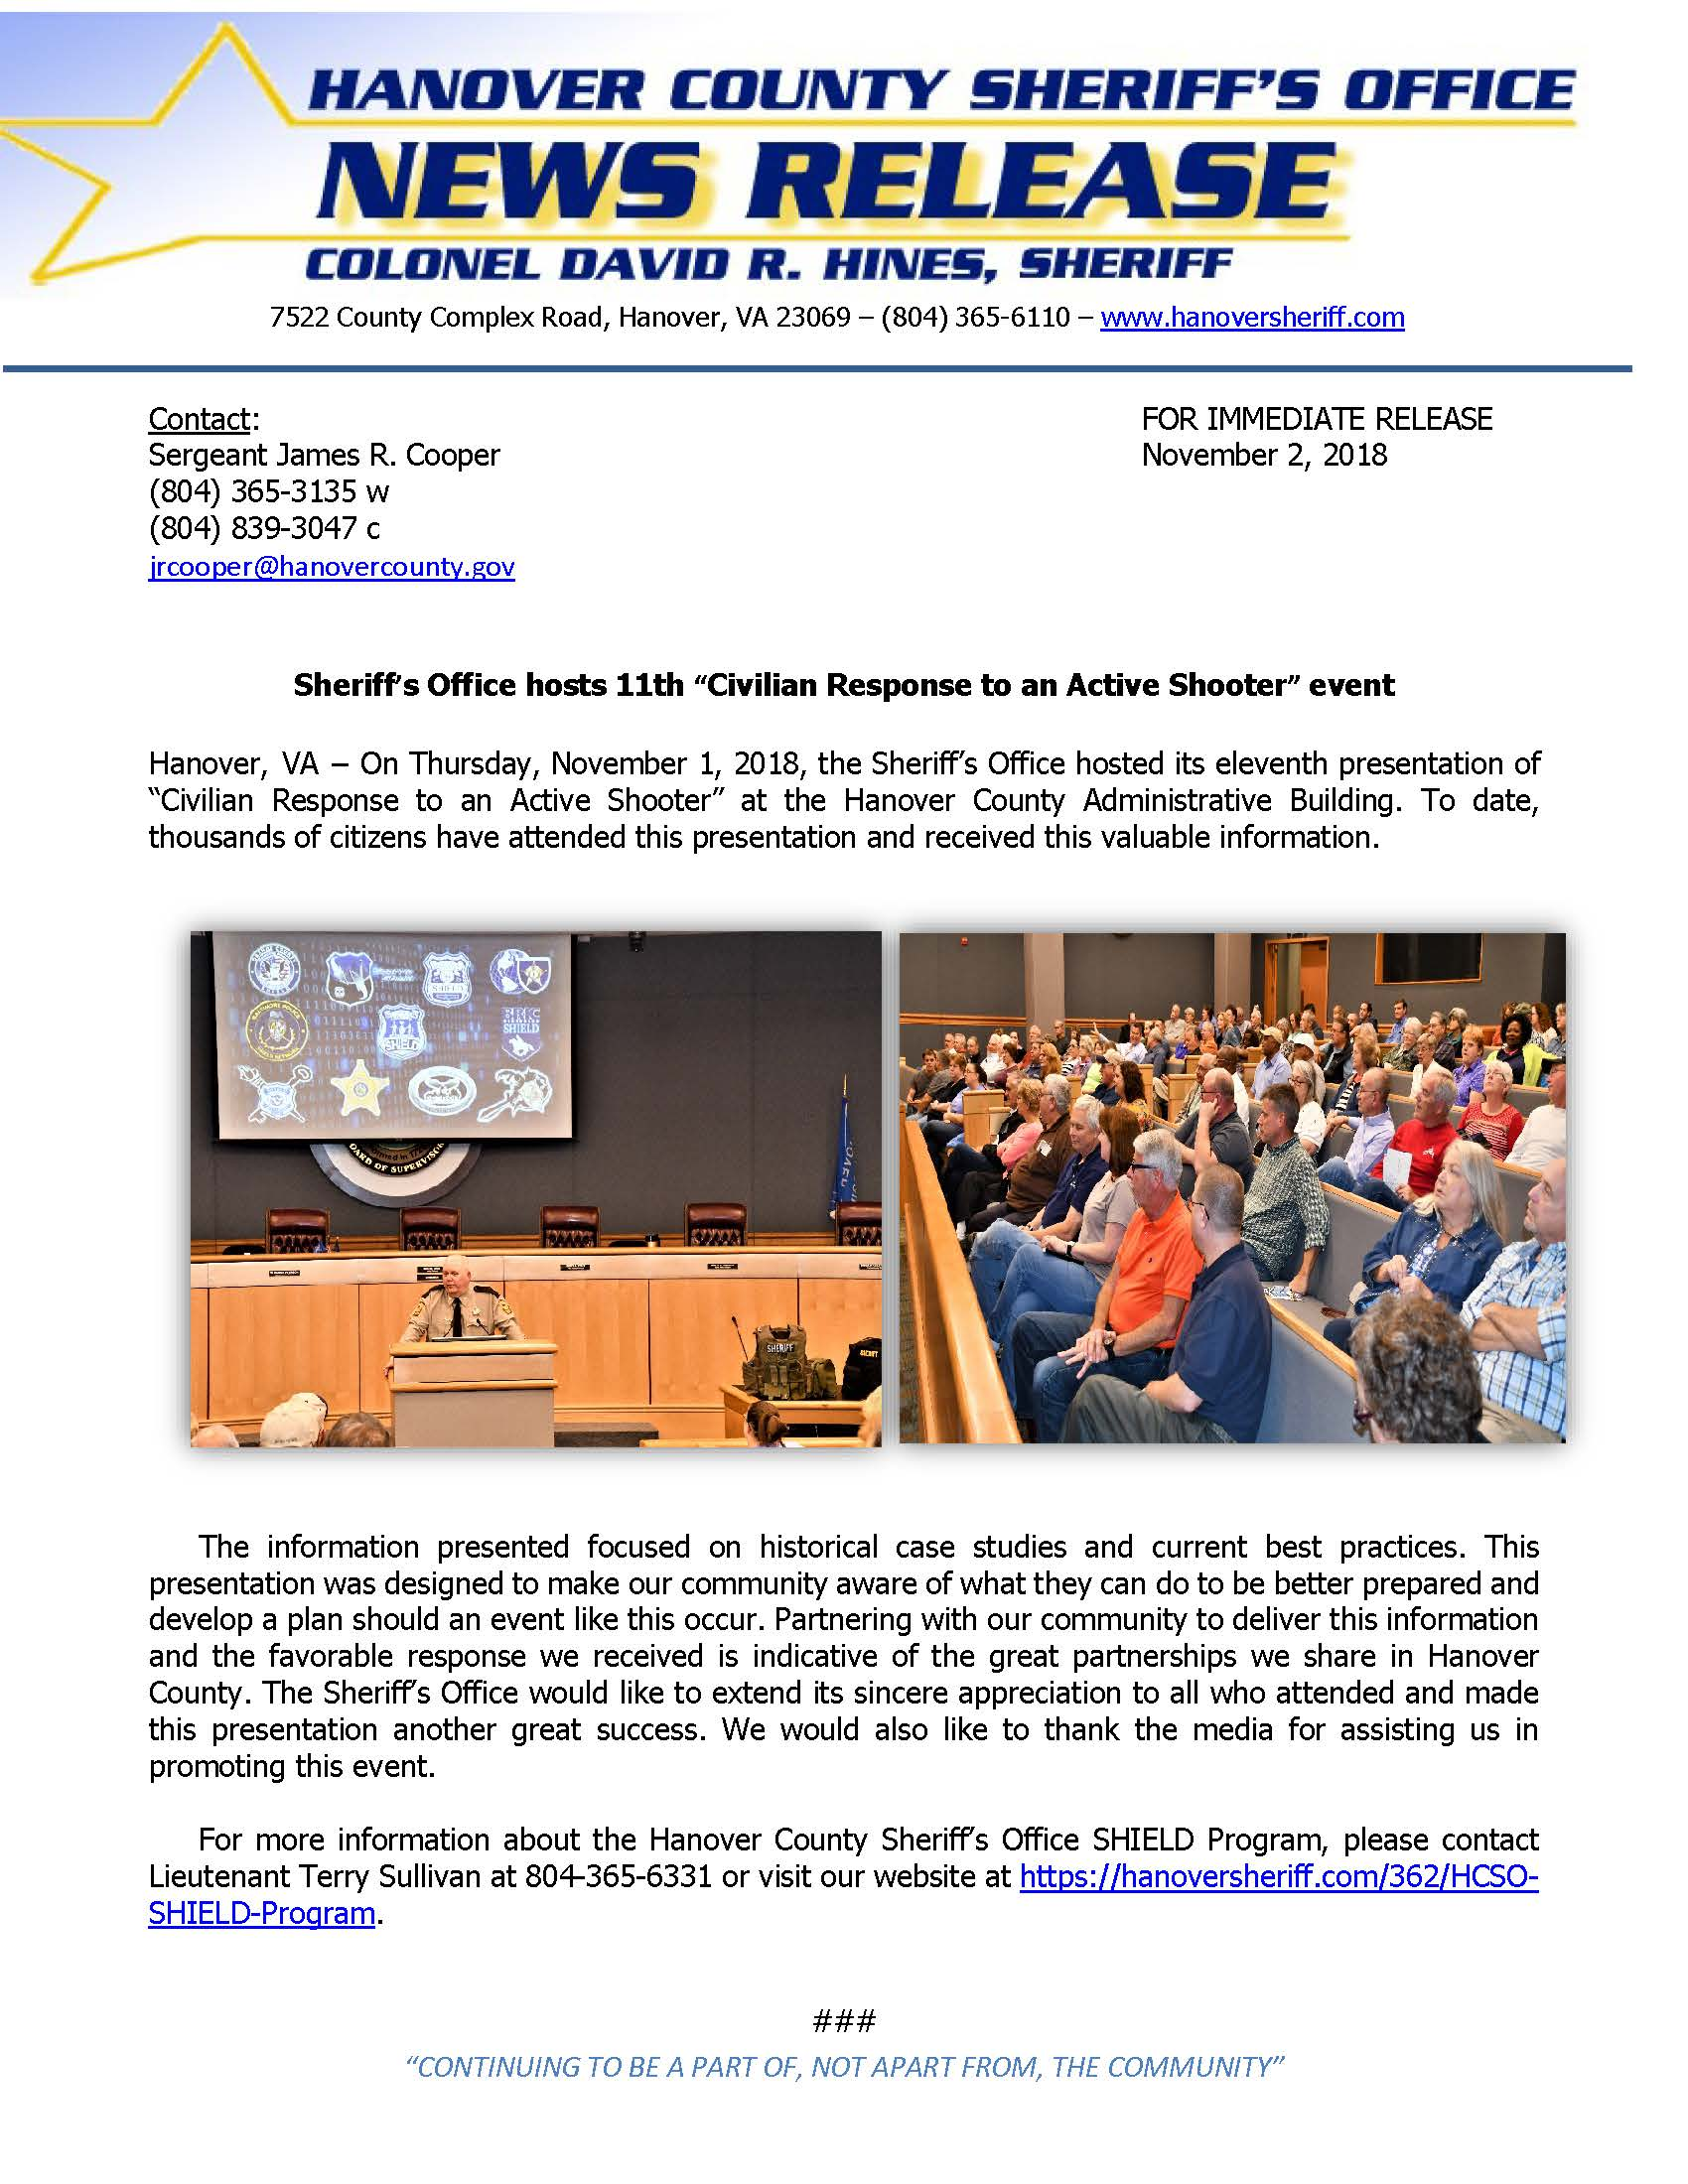 HCSO - 11th Civilian Response to Active Shooter Conference- November 2, 2018